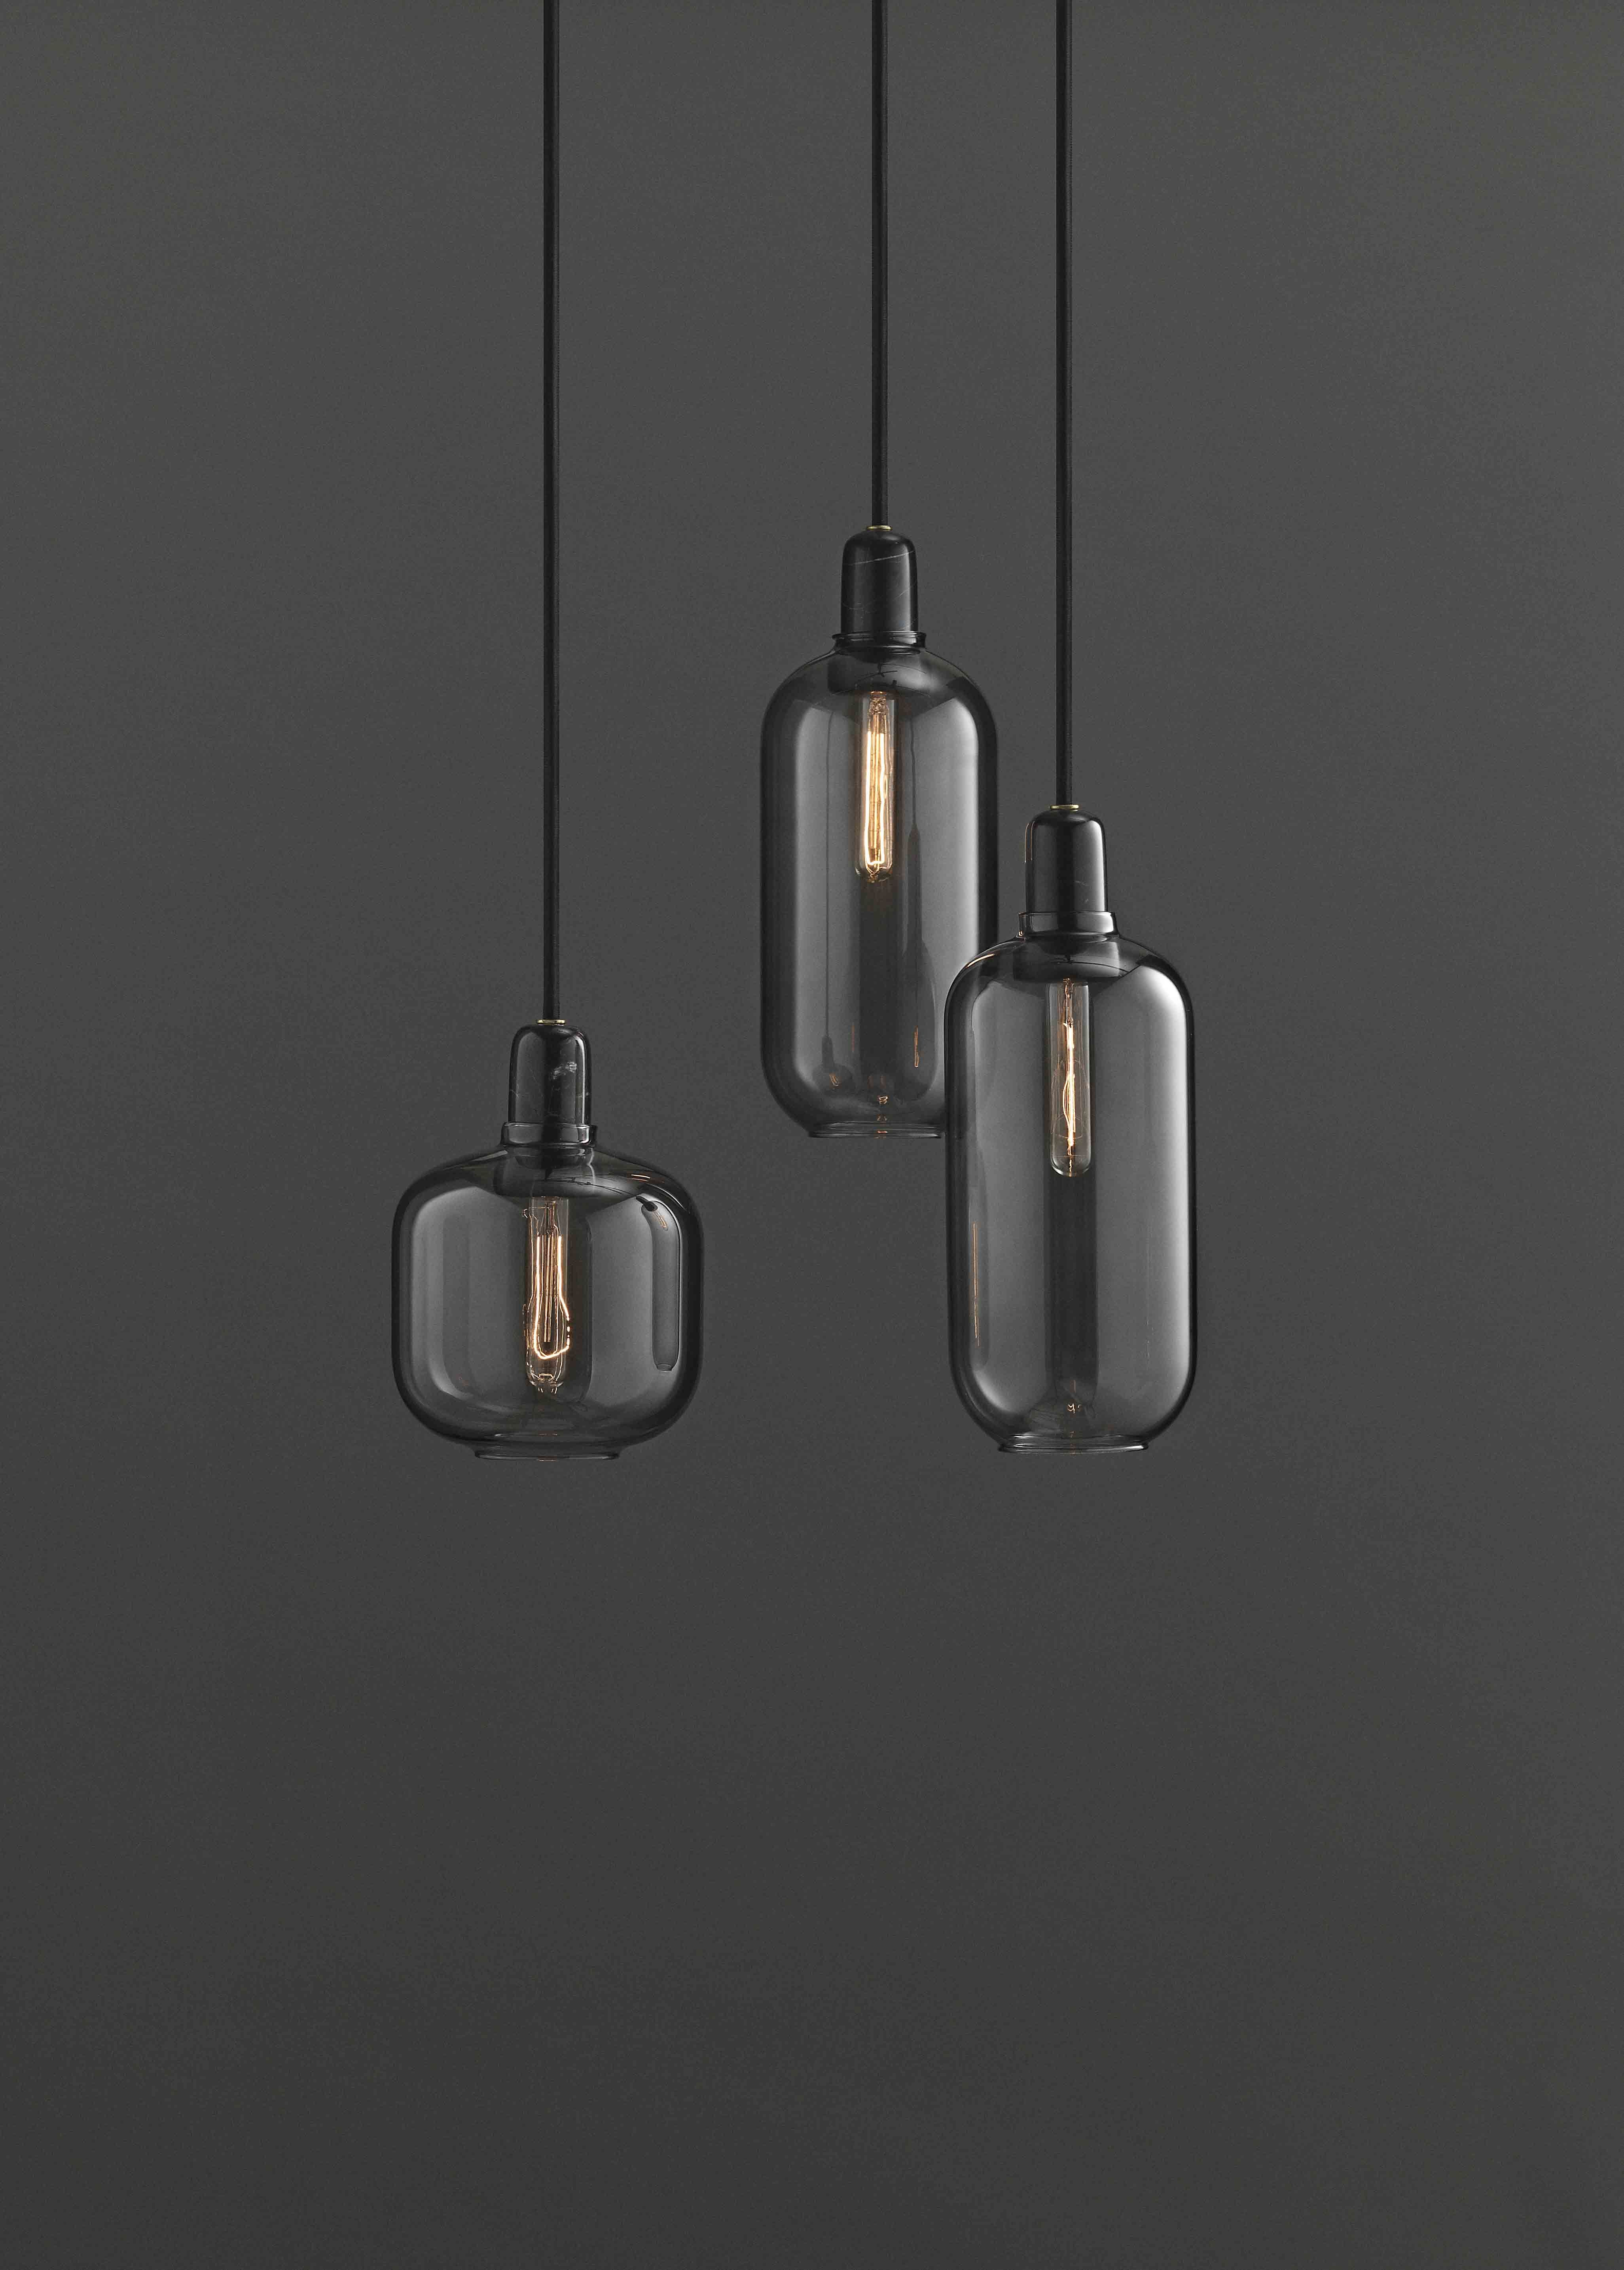 Normann Copenhagen Amp Pendant Lamp Eu Large Pendant Lamp Black Lamps Lamp